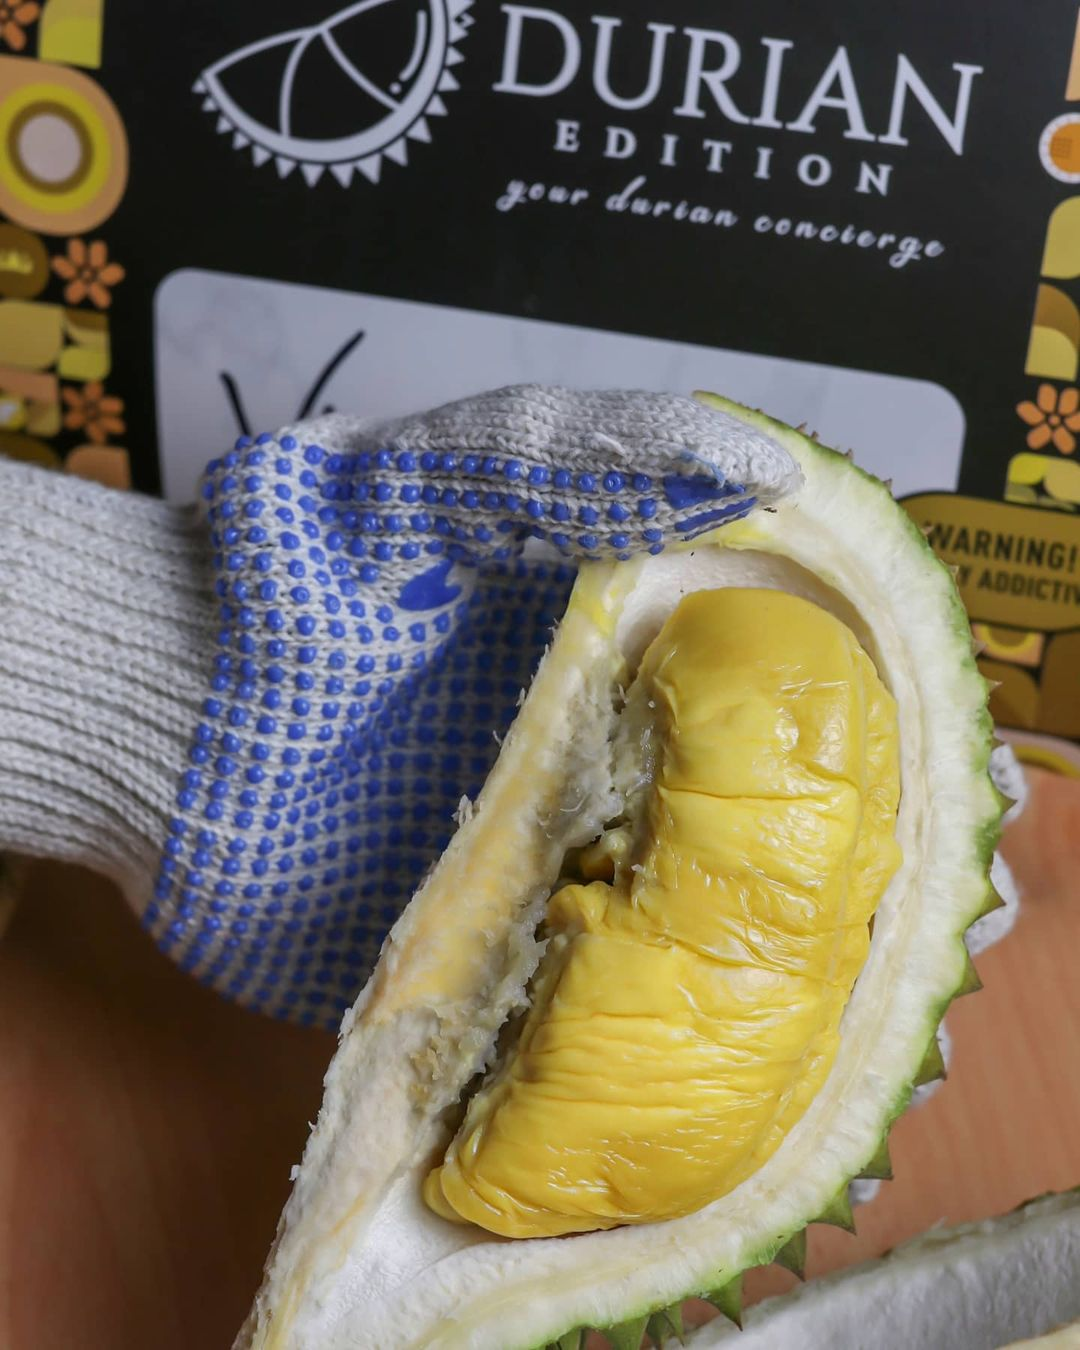 durian edition